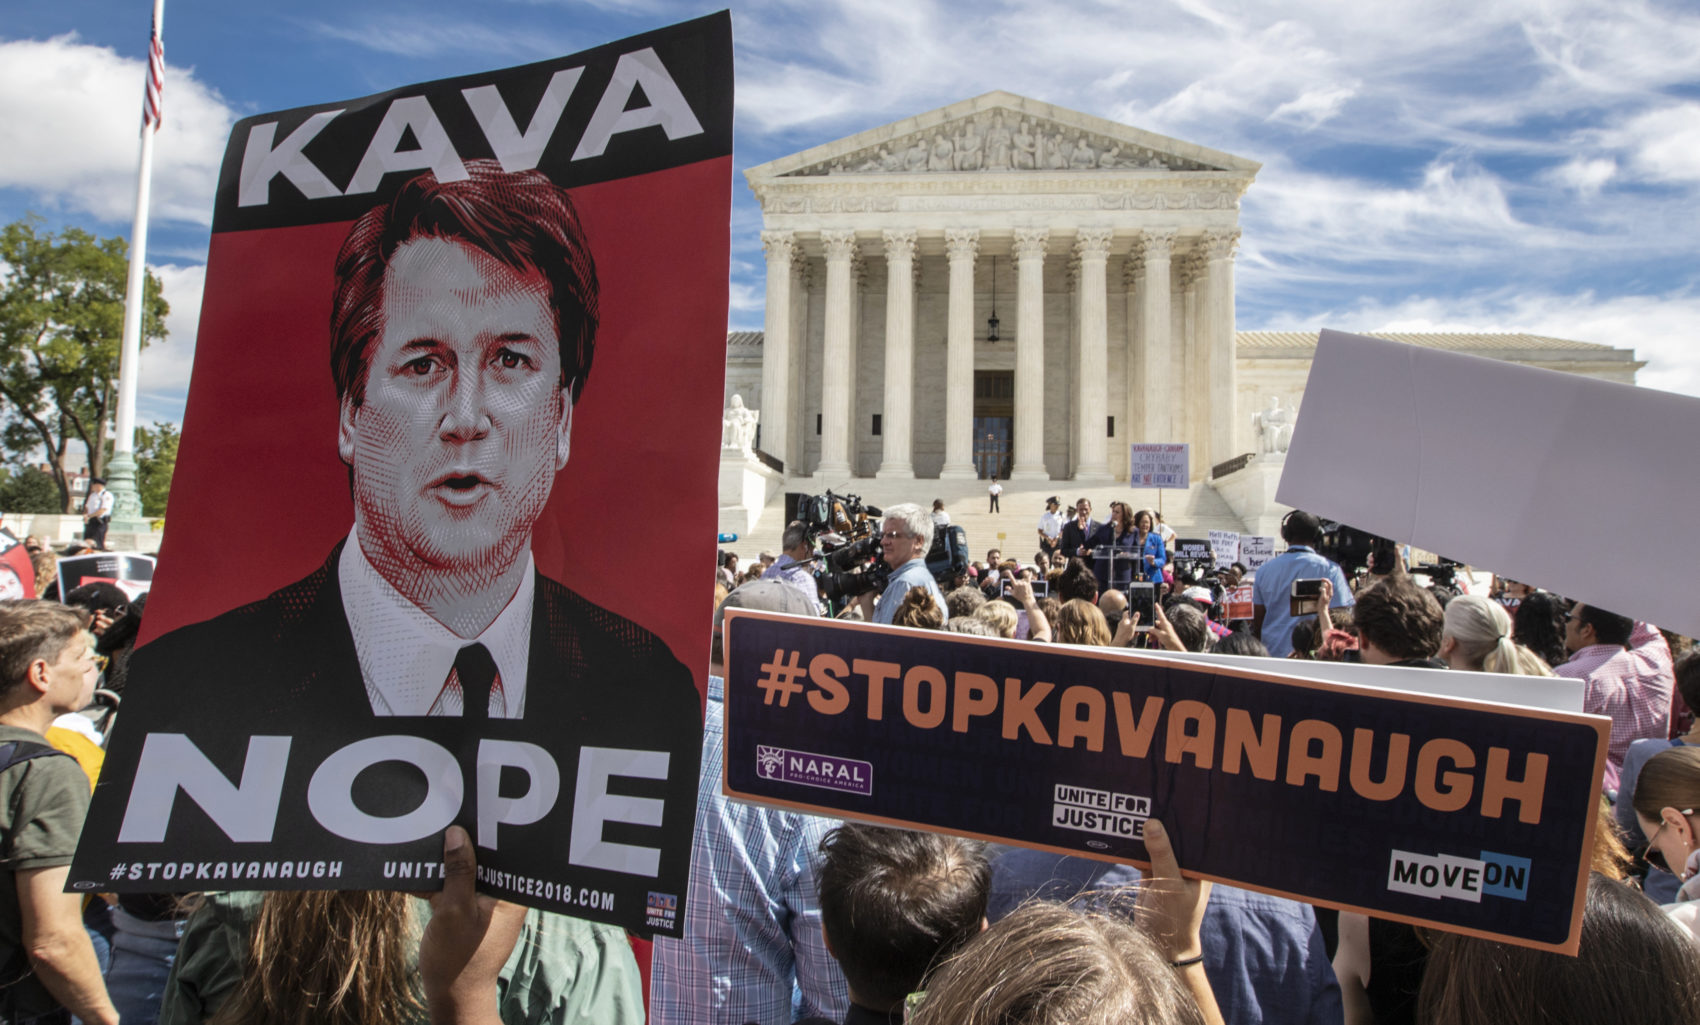 Protesters rally against Supreme Court nominee Brett Kavanaugh as the Senate Judiciary Committee debates his confirmation, Friday, Sept. 28, 2018, at the Supreme Court in Washington. (J. Scott Applewhite/AP)